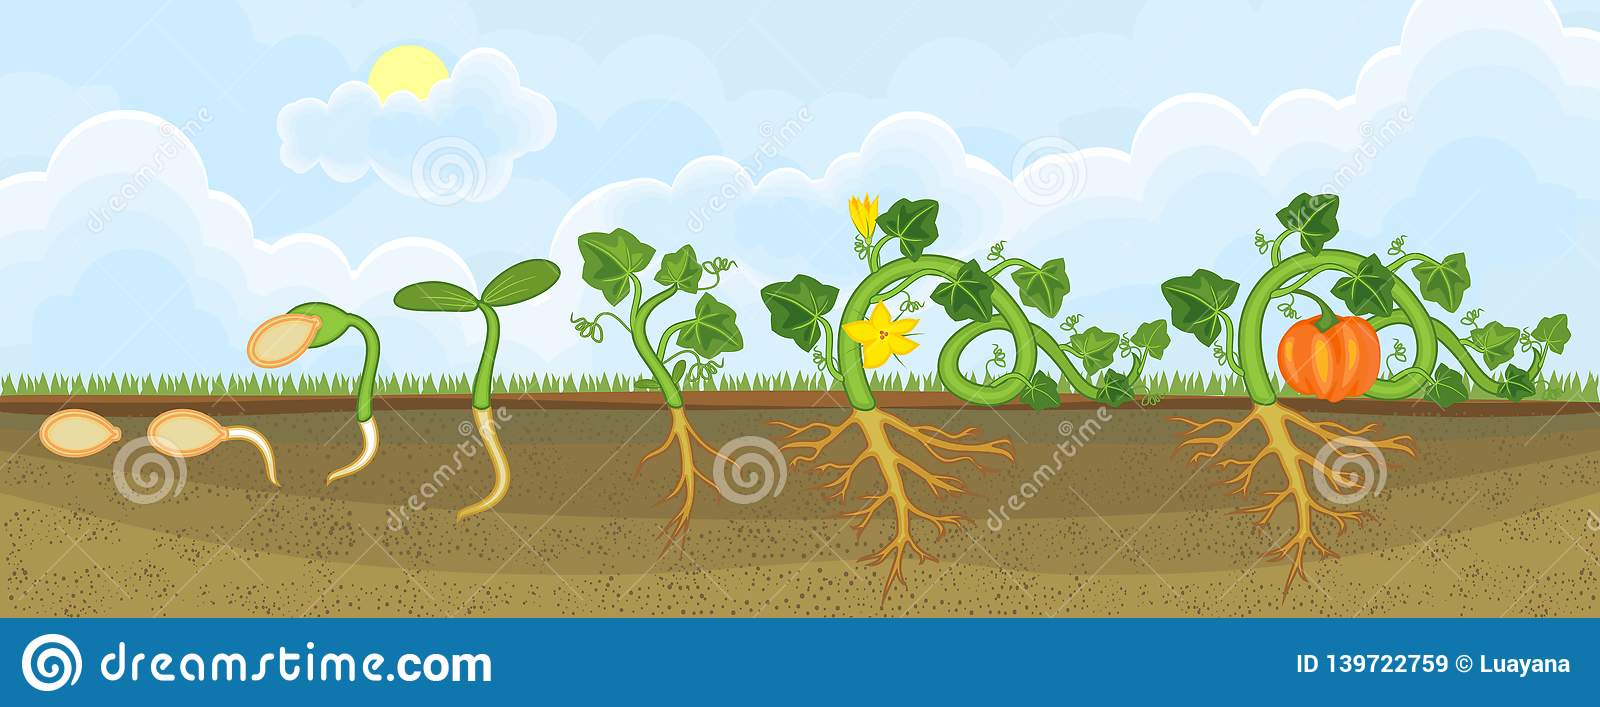 hight resolution of life cycle of pumpkin plant growth stages from seeding to flowering and fruit bearing